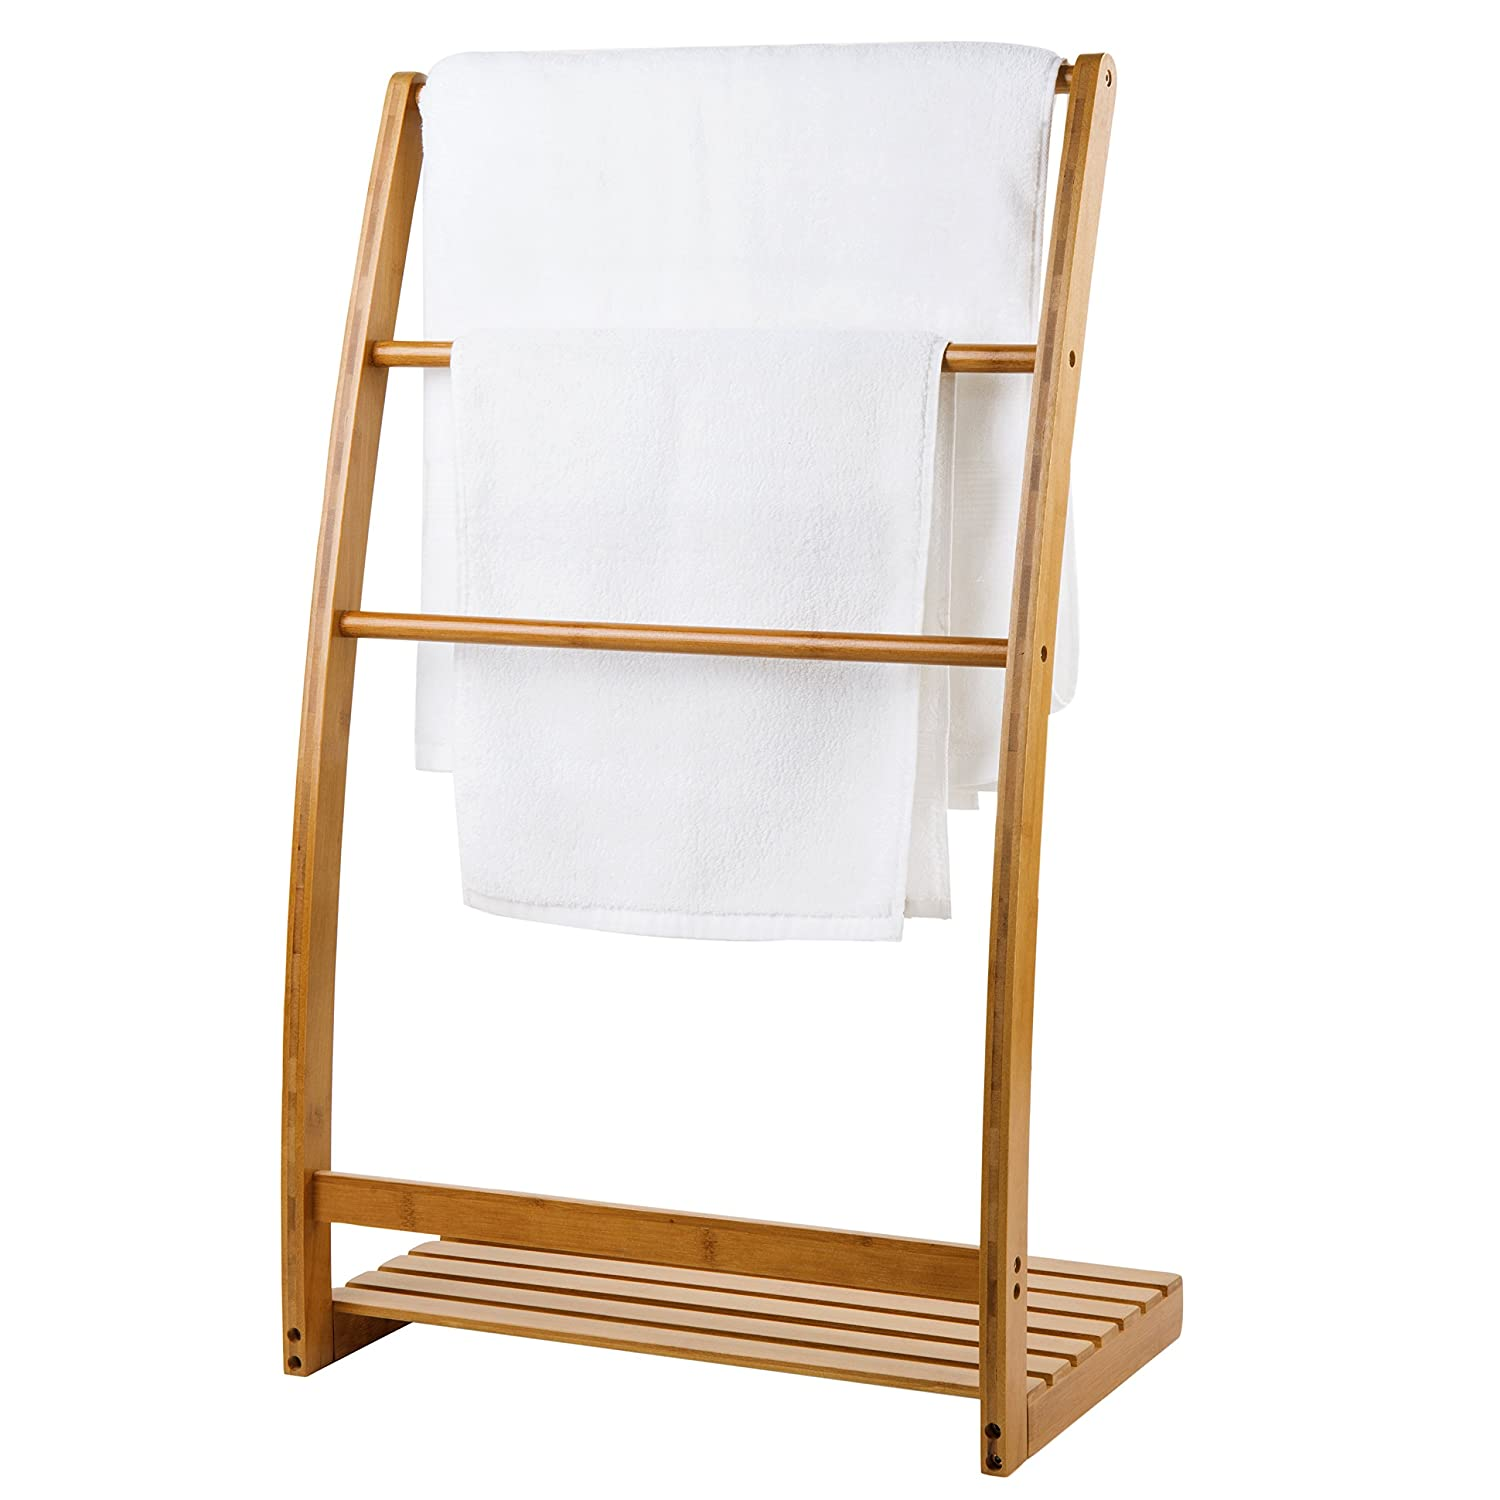 MyGift 33 Inch Freestanding 3-Tier Bamboo Towel Stand with Storage Shelf